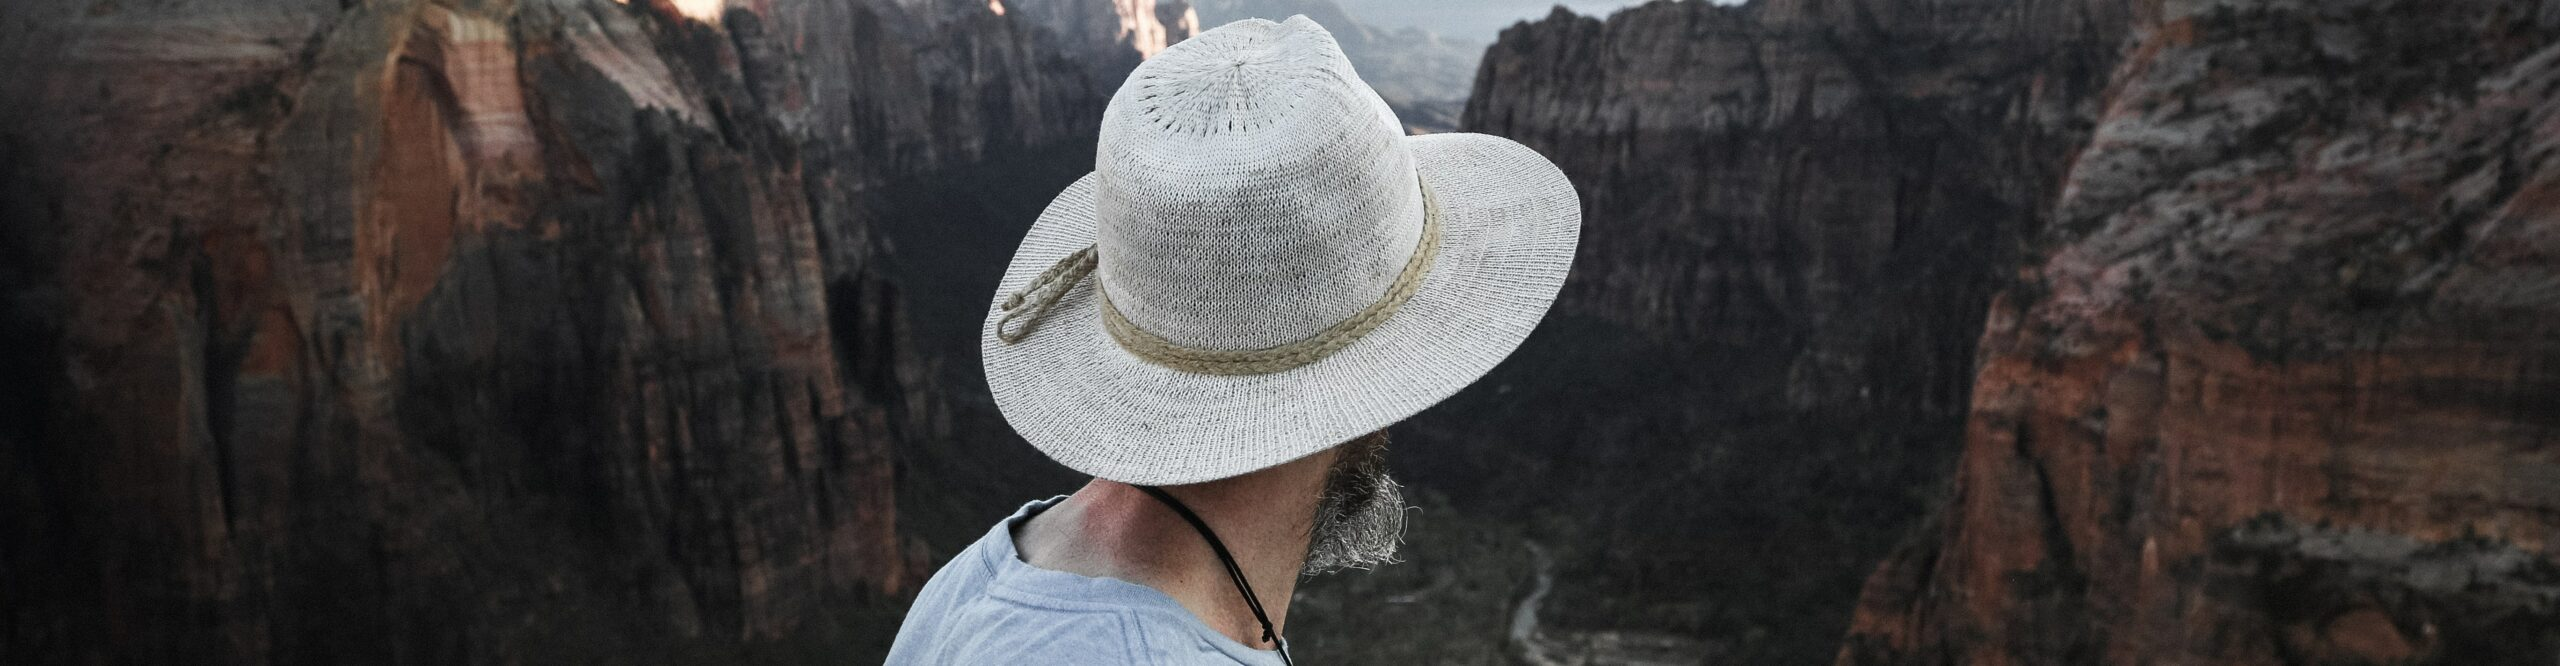 A pilgrim with a wide-brimmed hat stands looking out over a mountain range.